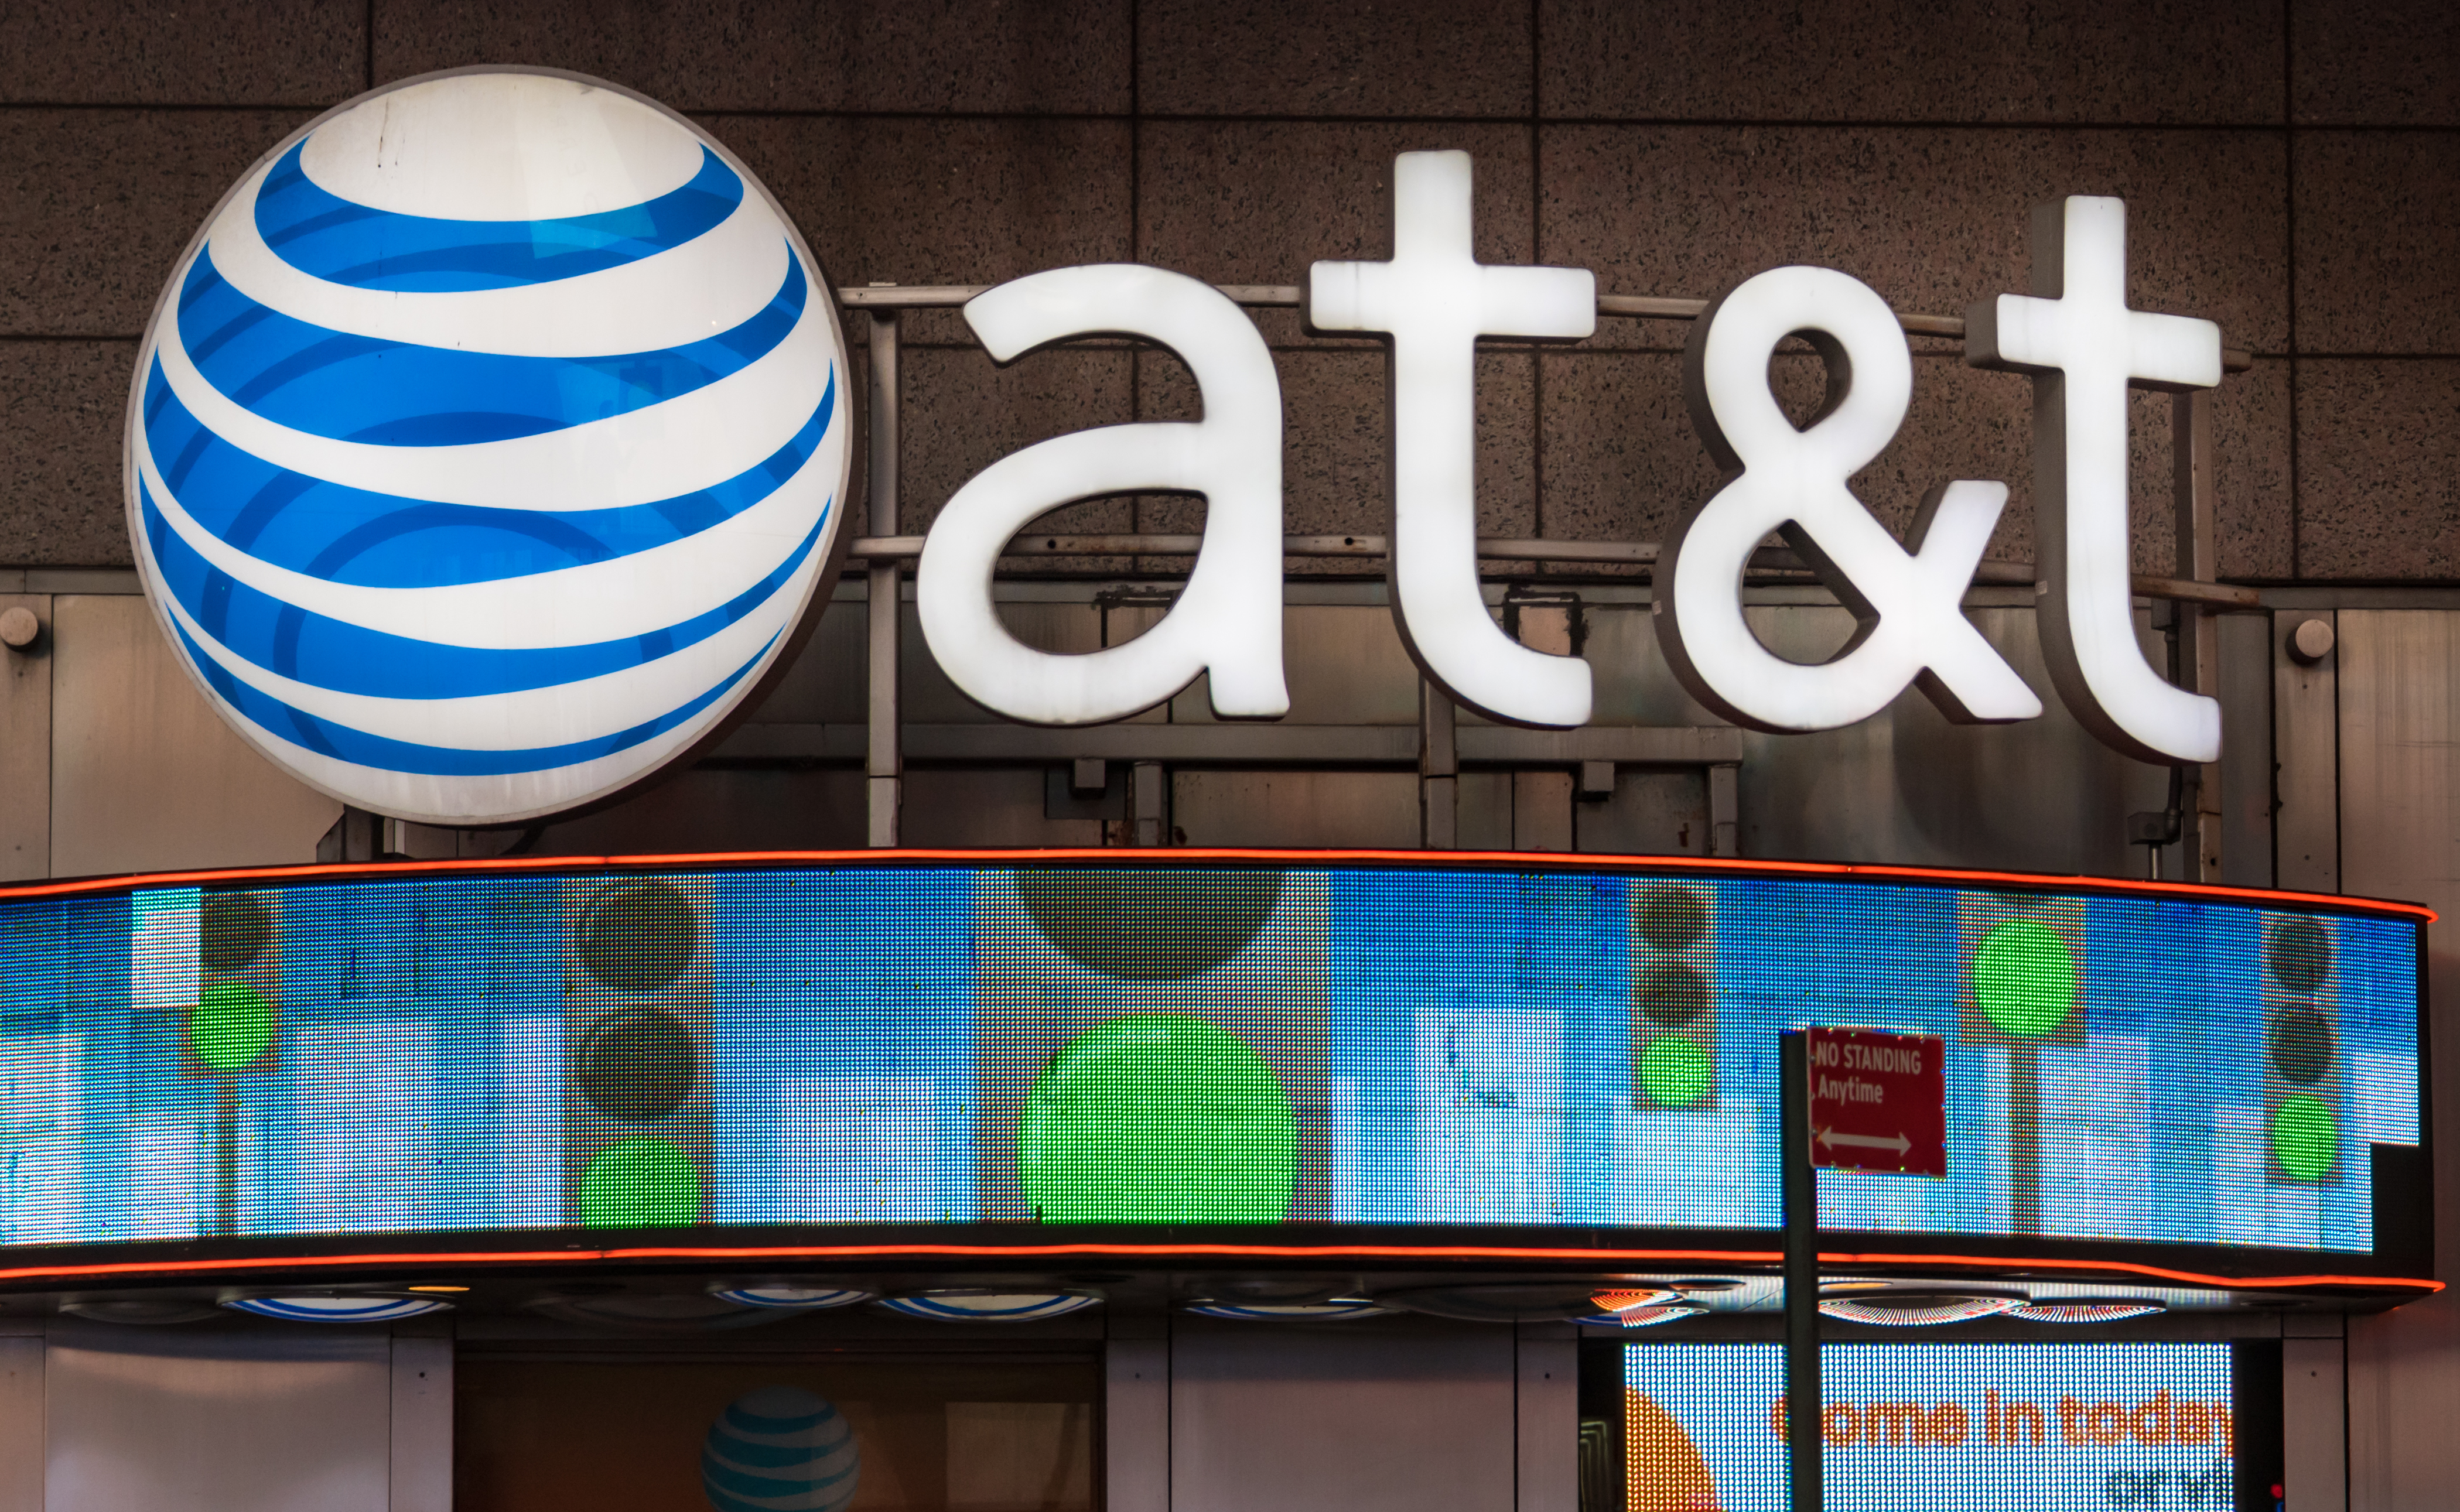 AT&T office New York City, USA: Signage and logo outside its office glowing at night.                                      AT&T Inc. is an American multinational telecommunications corporation, headquartered at Whitacre Tower in downtown Dallas, Texas. (Photo by Roberto Machado Noa/LightRocket via Getty Images)